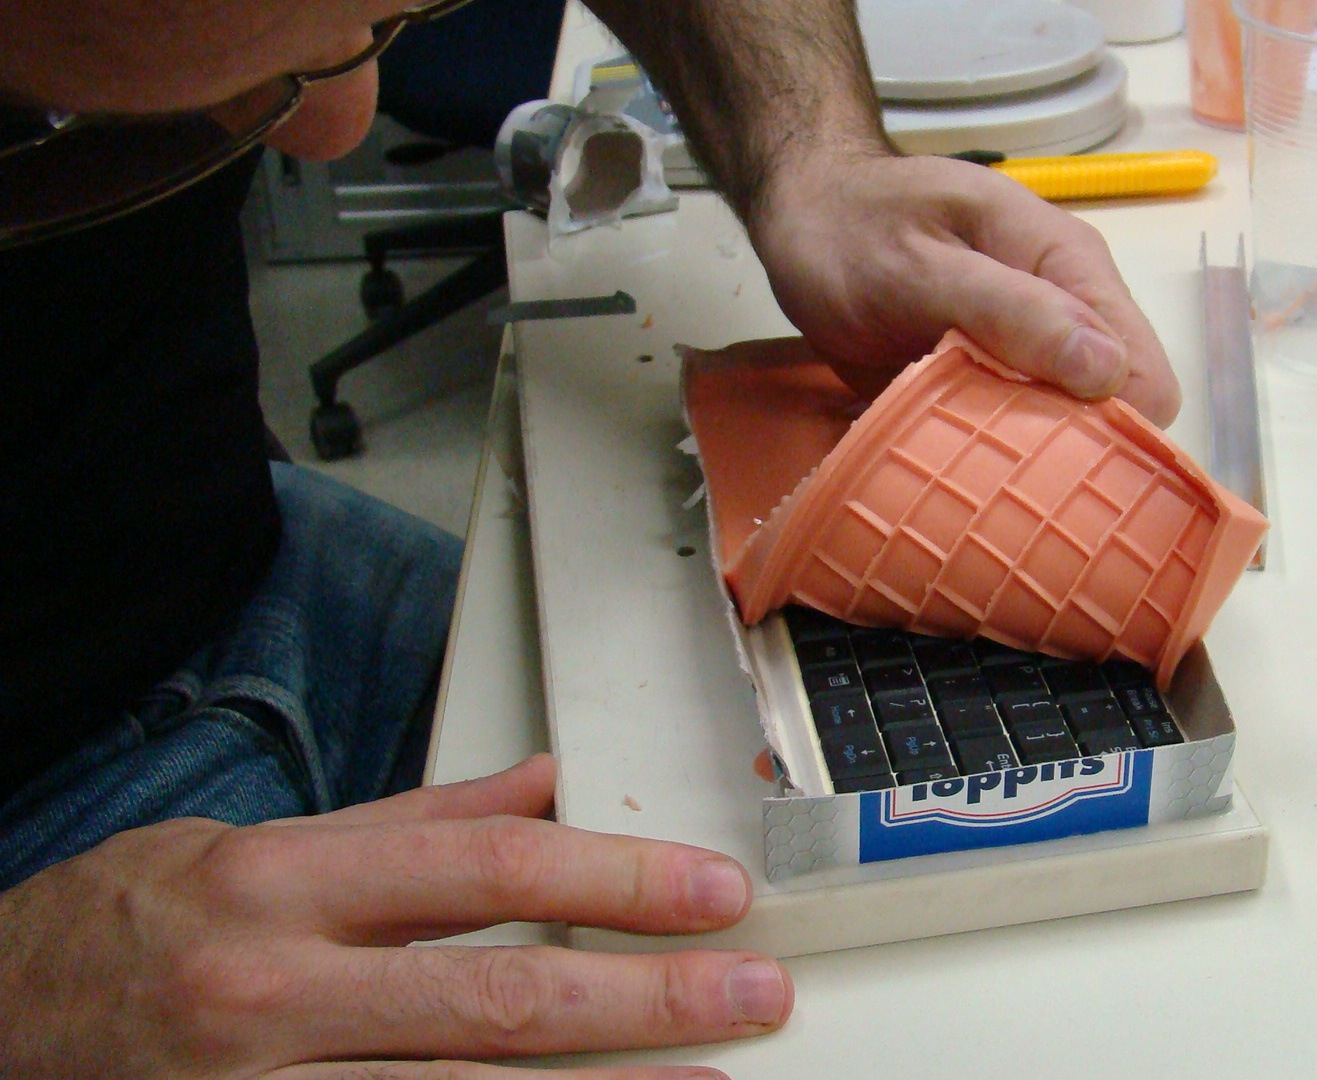 Georges peels the new silicone mold off the keyboard